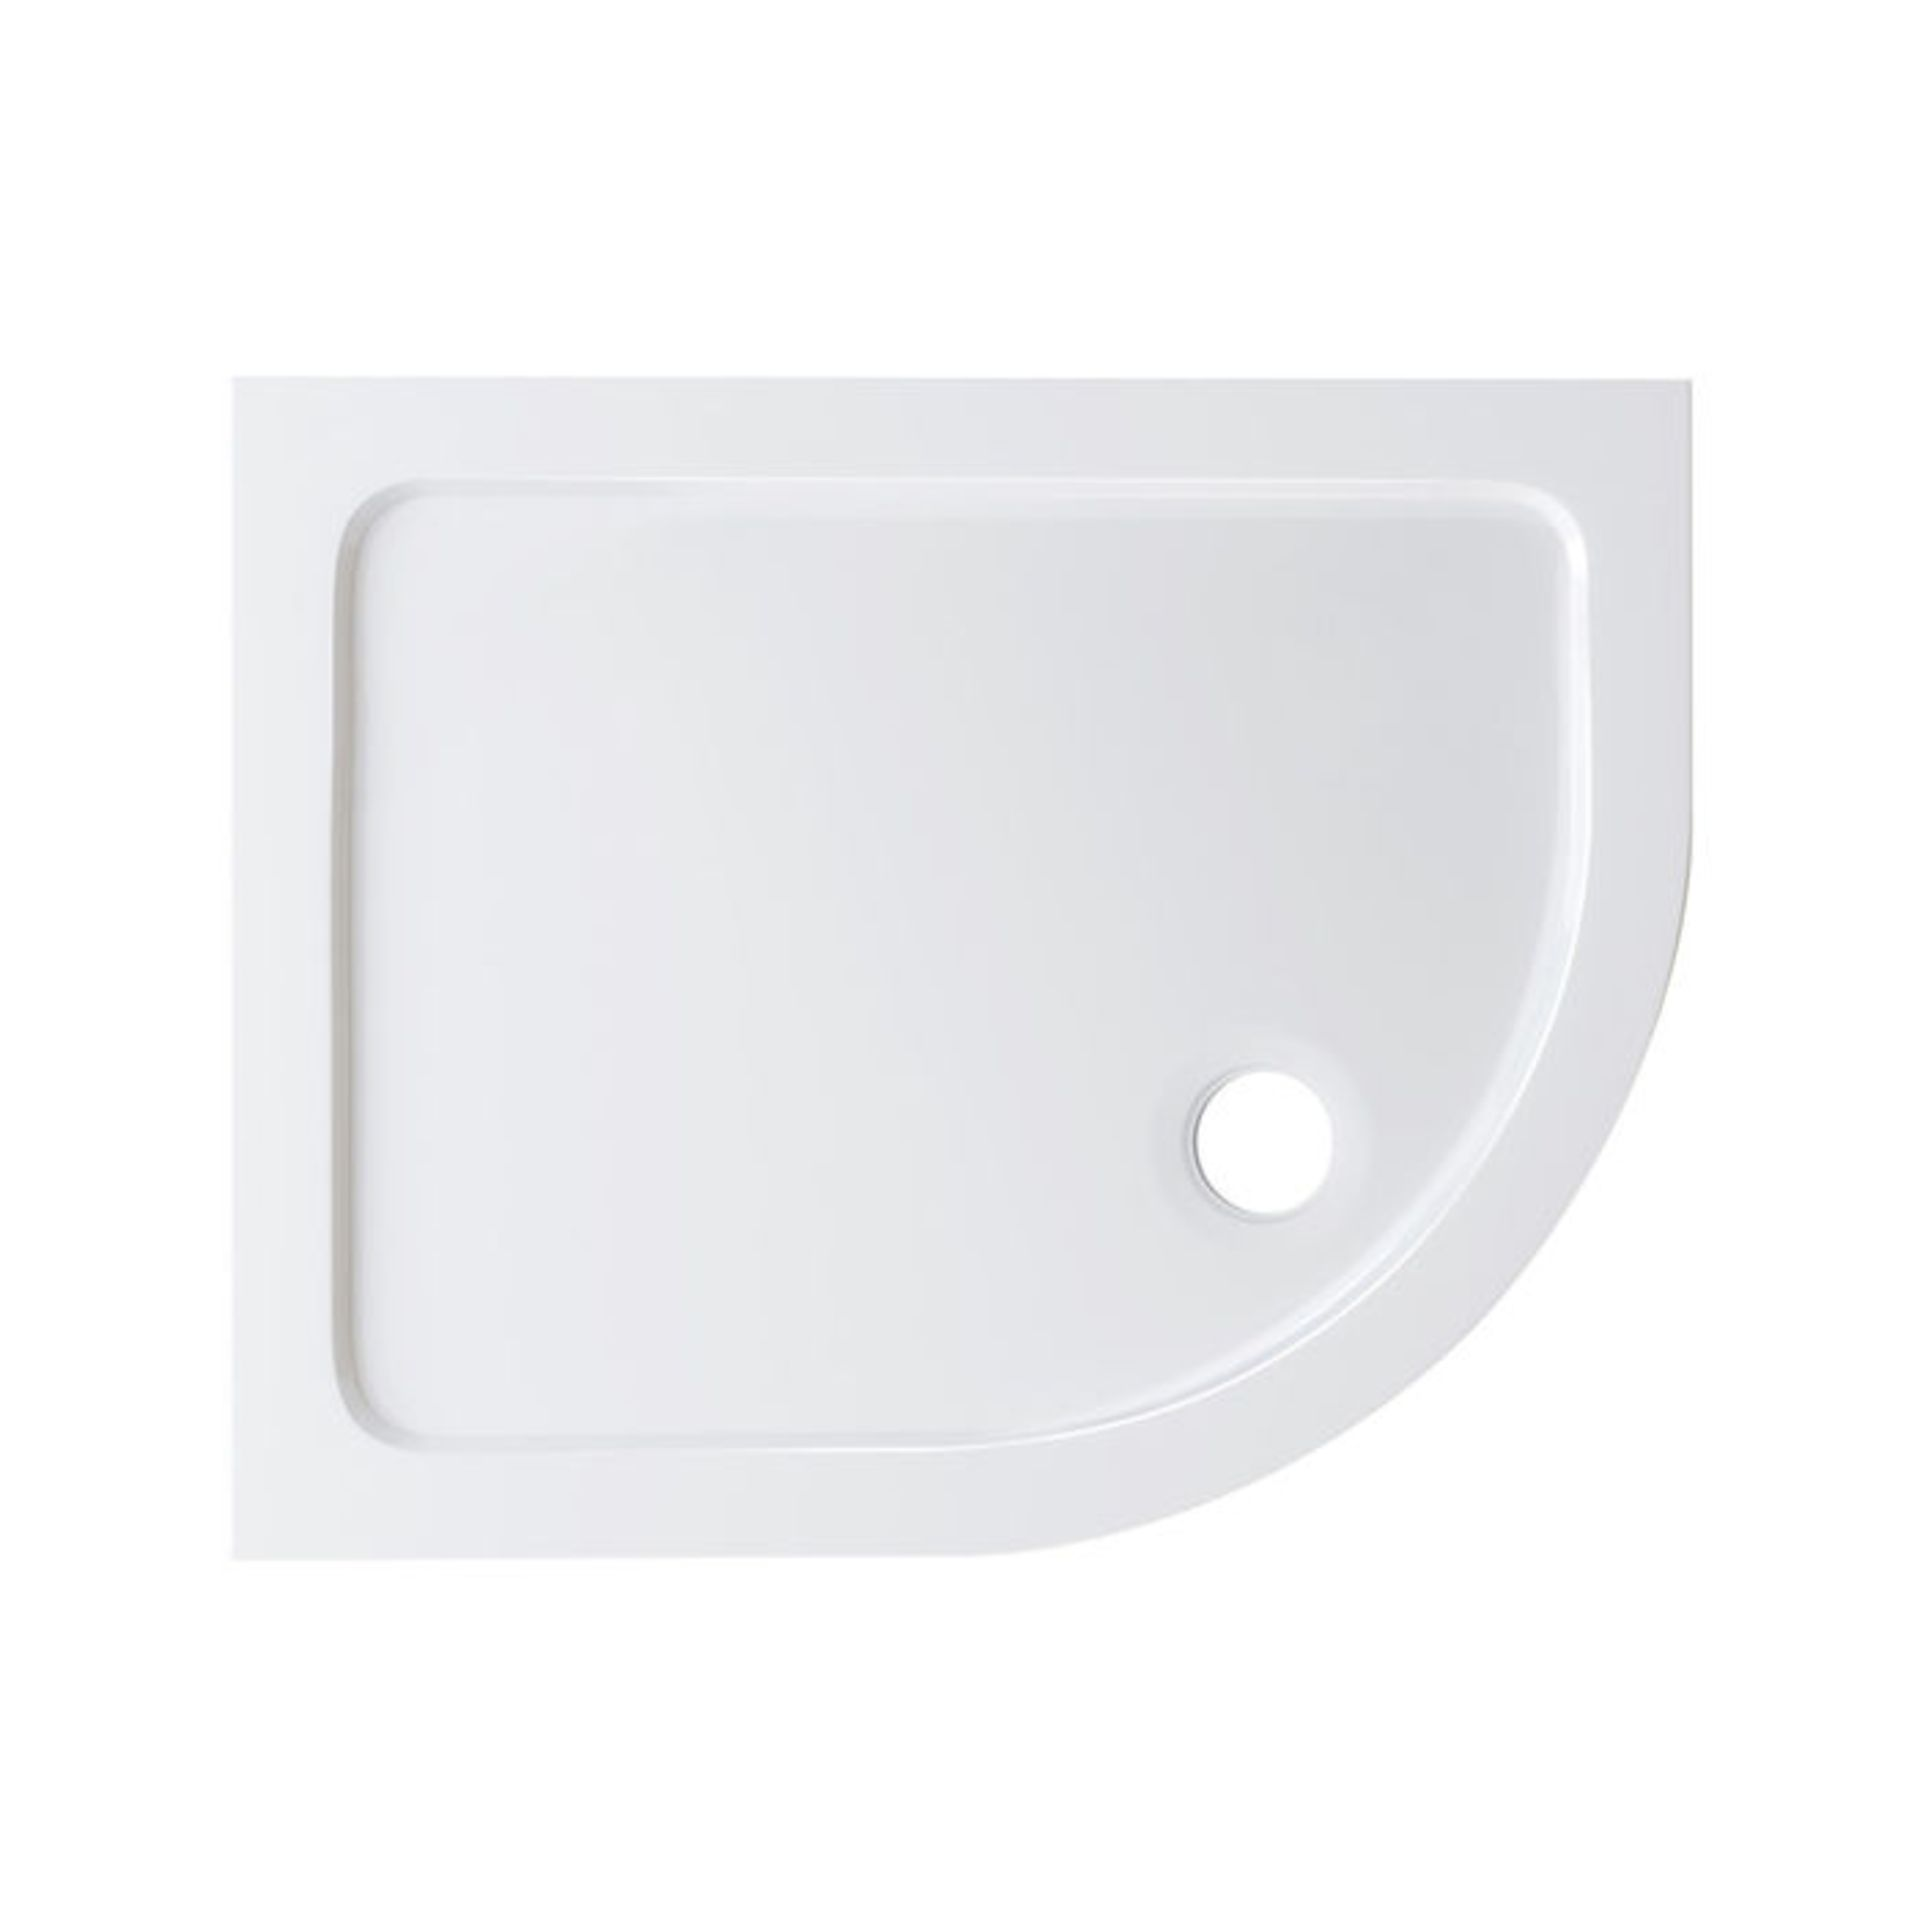 Lot 6 - (W118) 1000x800mm Offset Quadrant Ultra Slim Stone Shower Tray - Right. RRP £249.99. Low profile